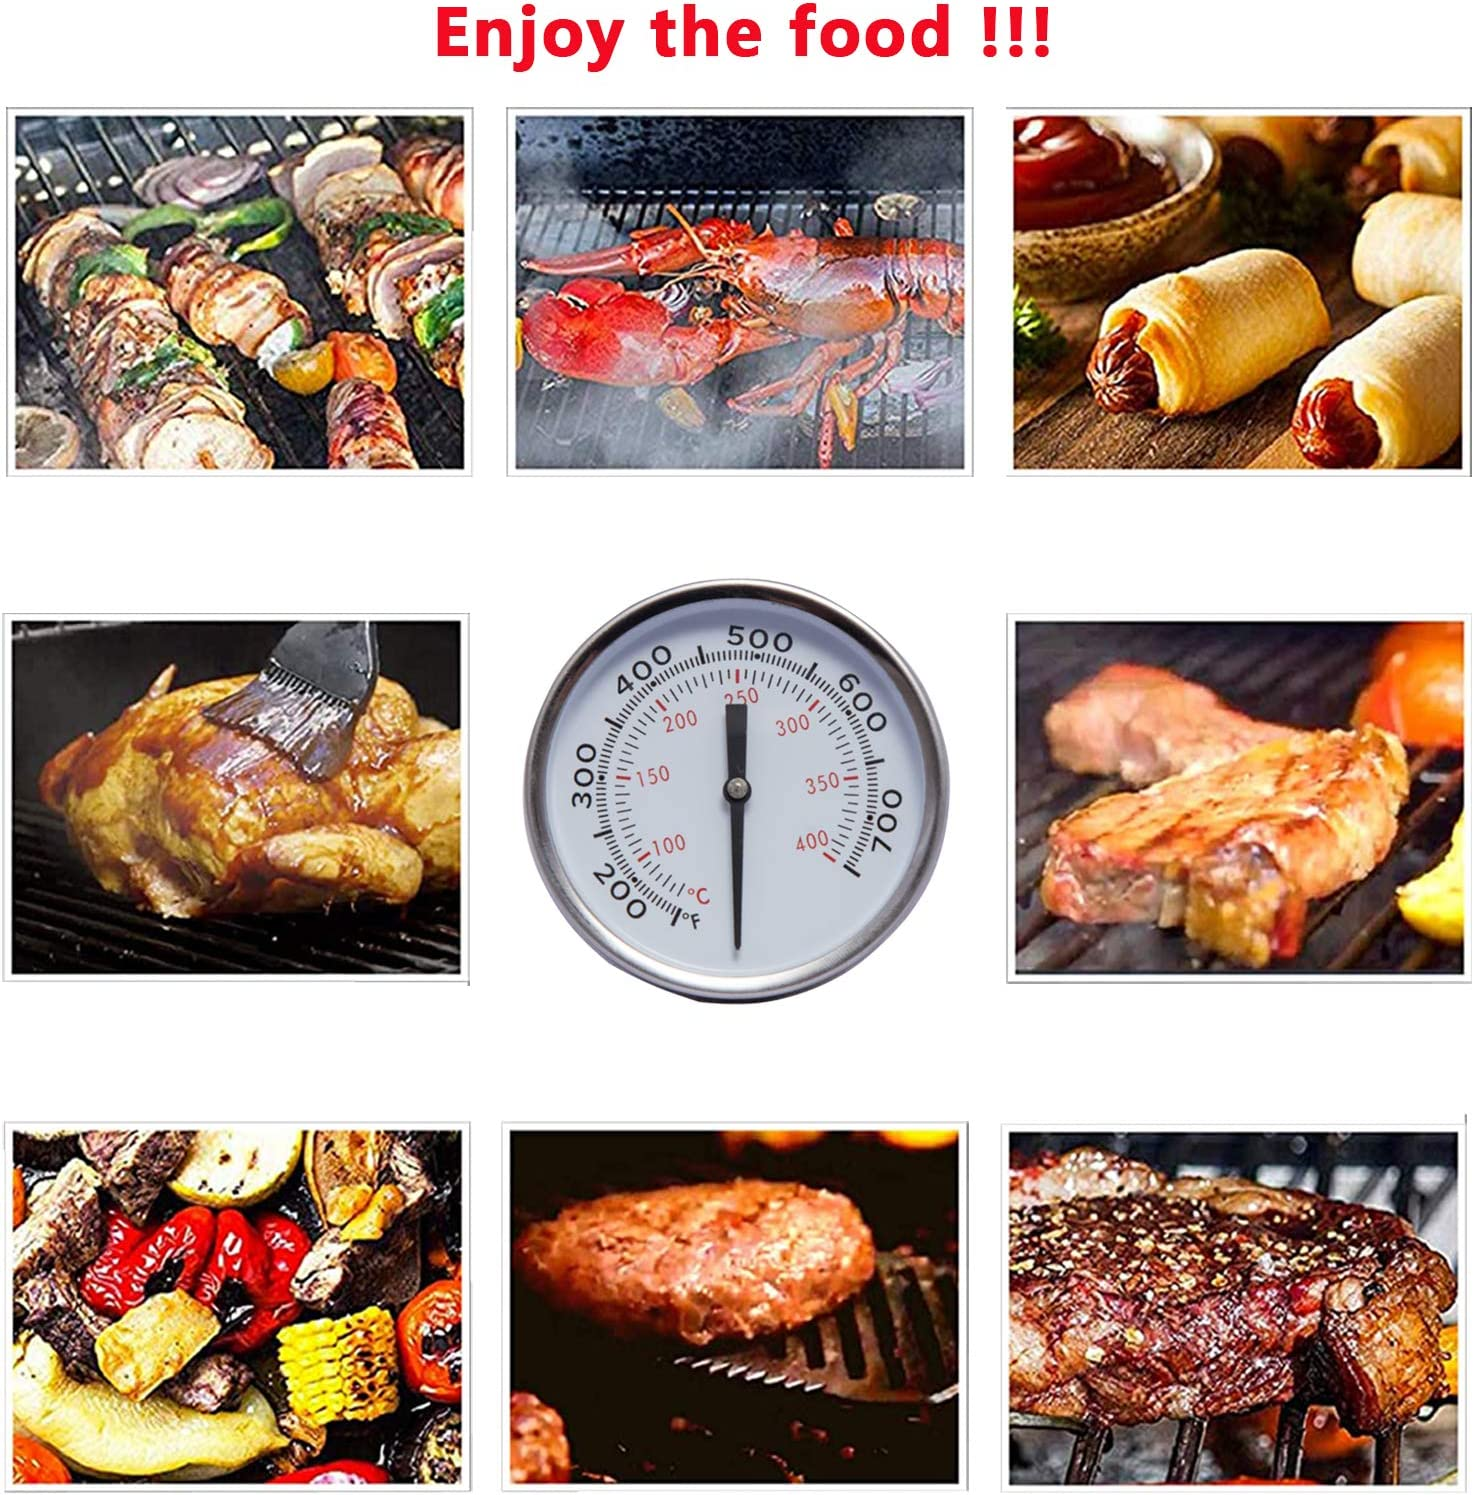 Black, 1 Pcs BBQ Thermometer Temperature Gauge Pit Grill Thermometer for Meat Cooking Port Lamb Beef Stainless Steel Temp Gauge YUIDDA 2 Smoker Thermometer